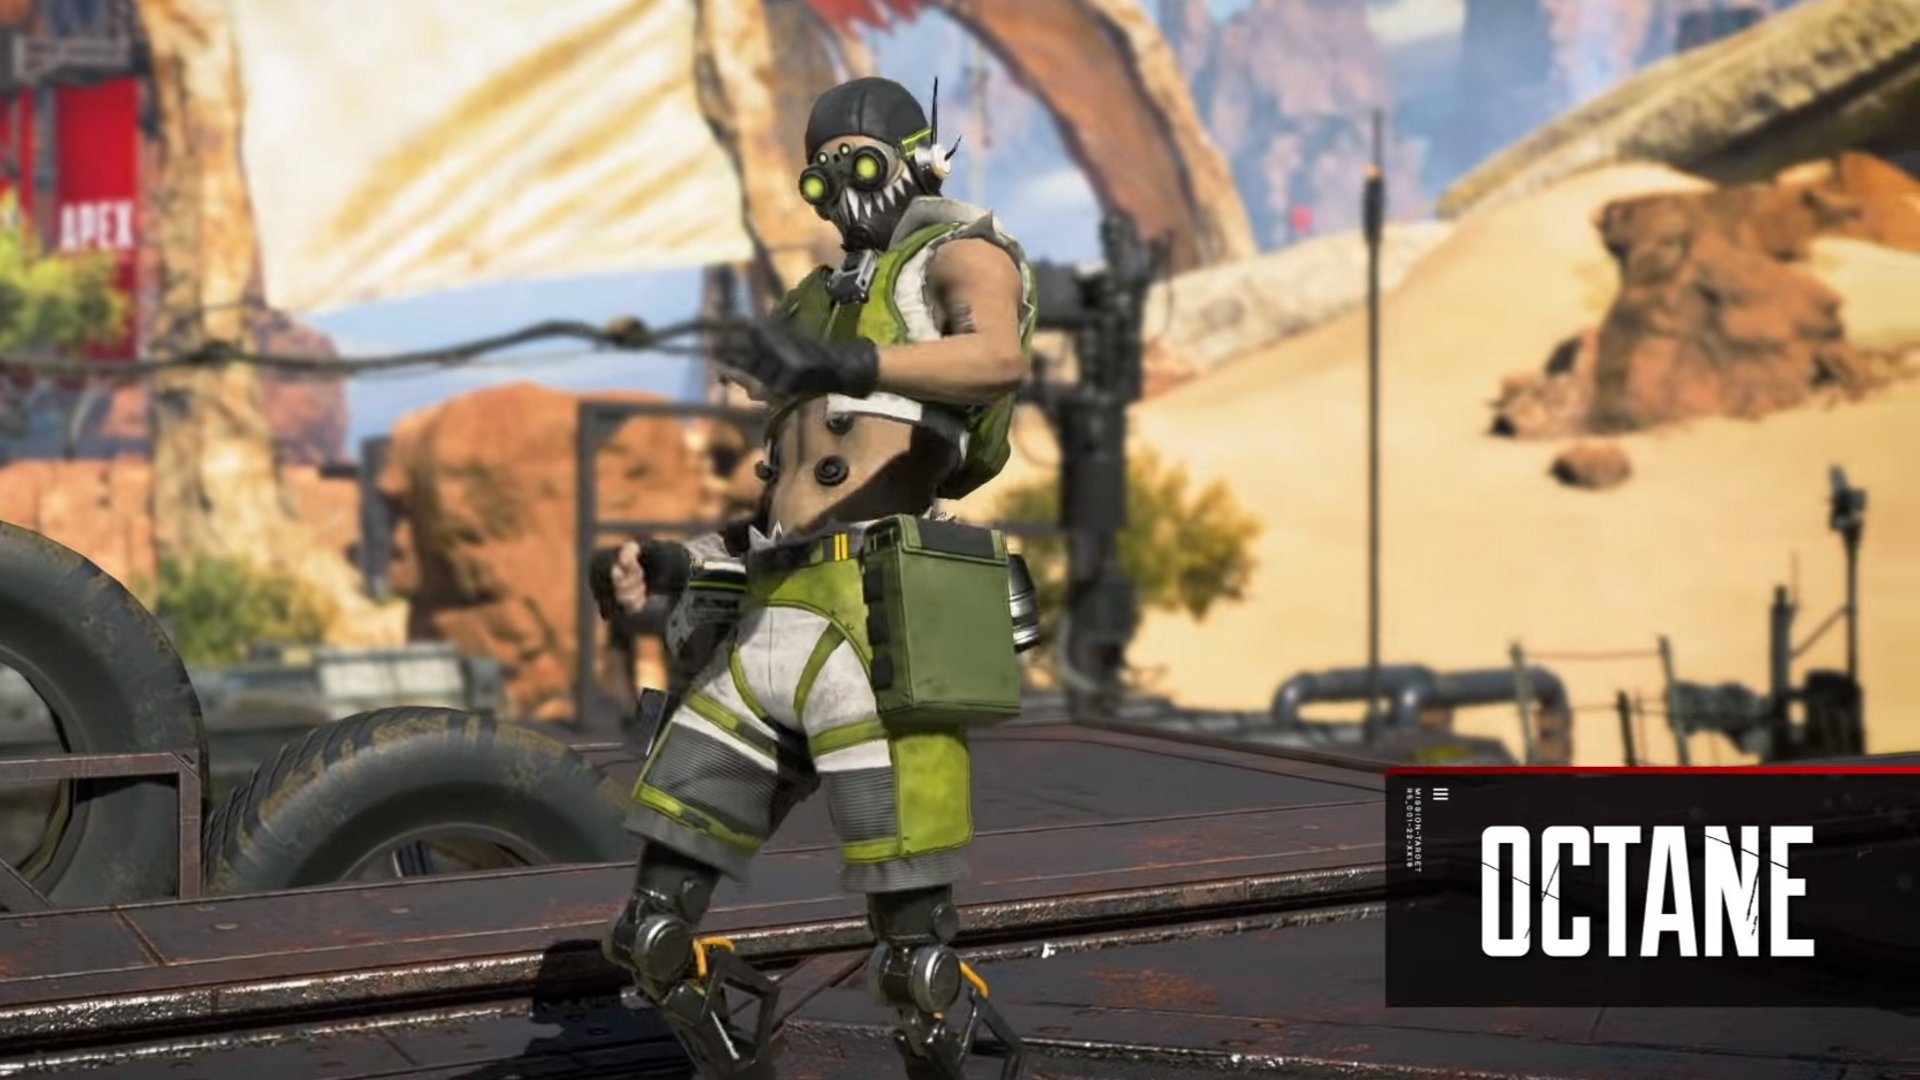 How to play Octane in Apex Legends